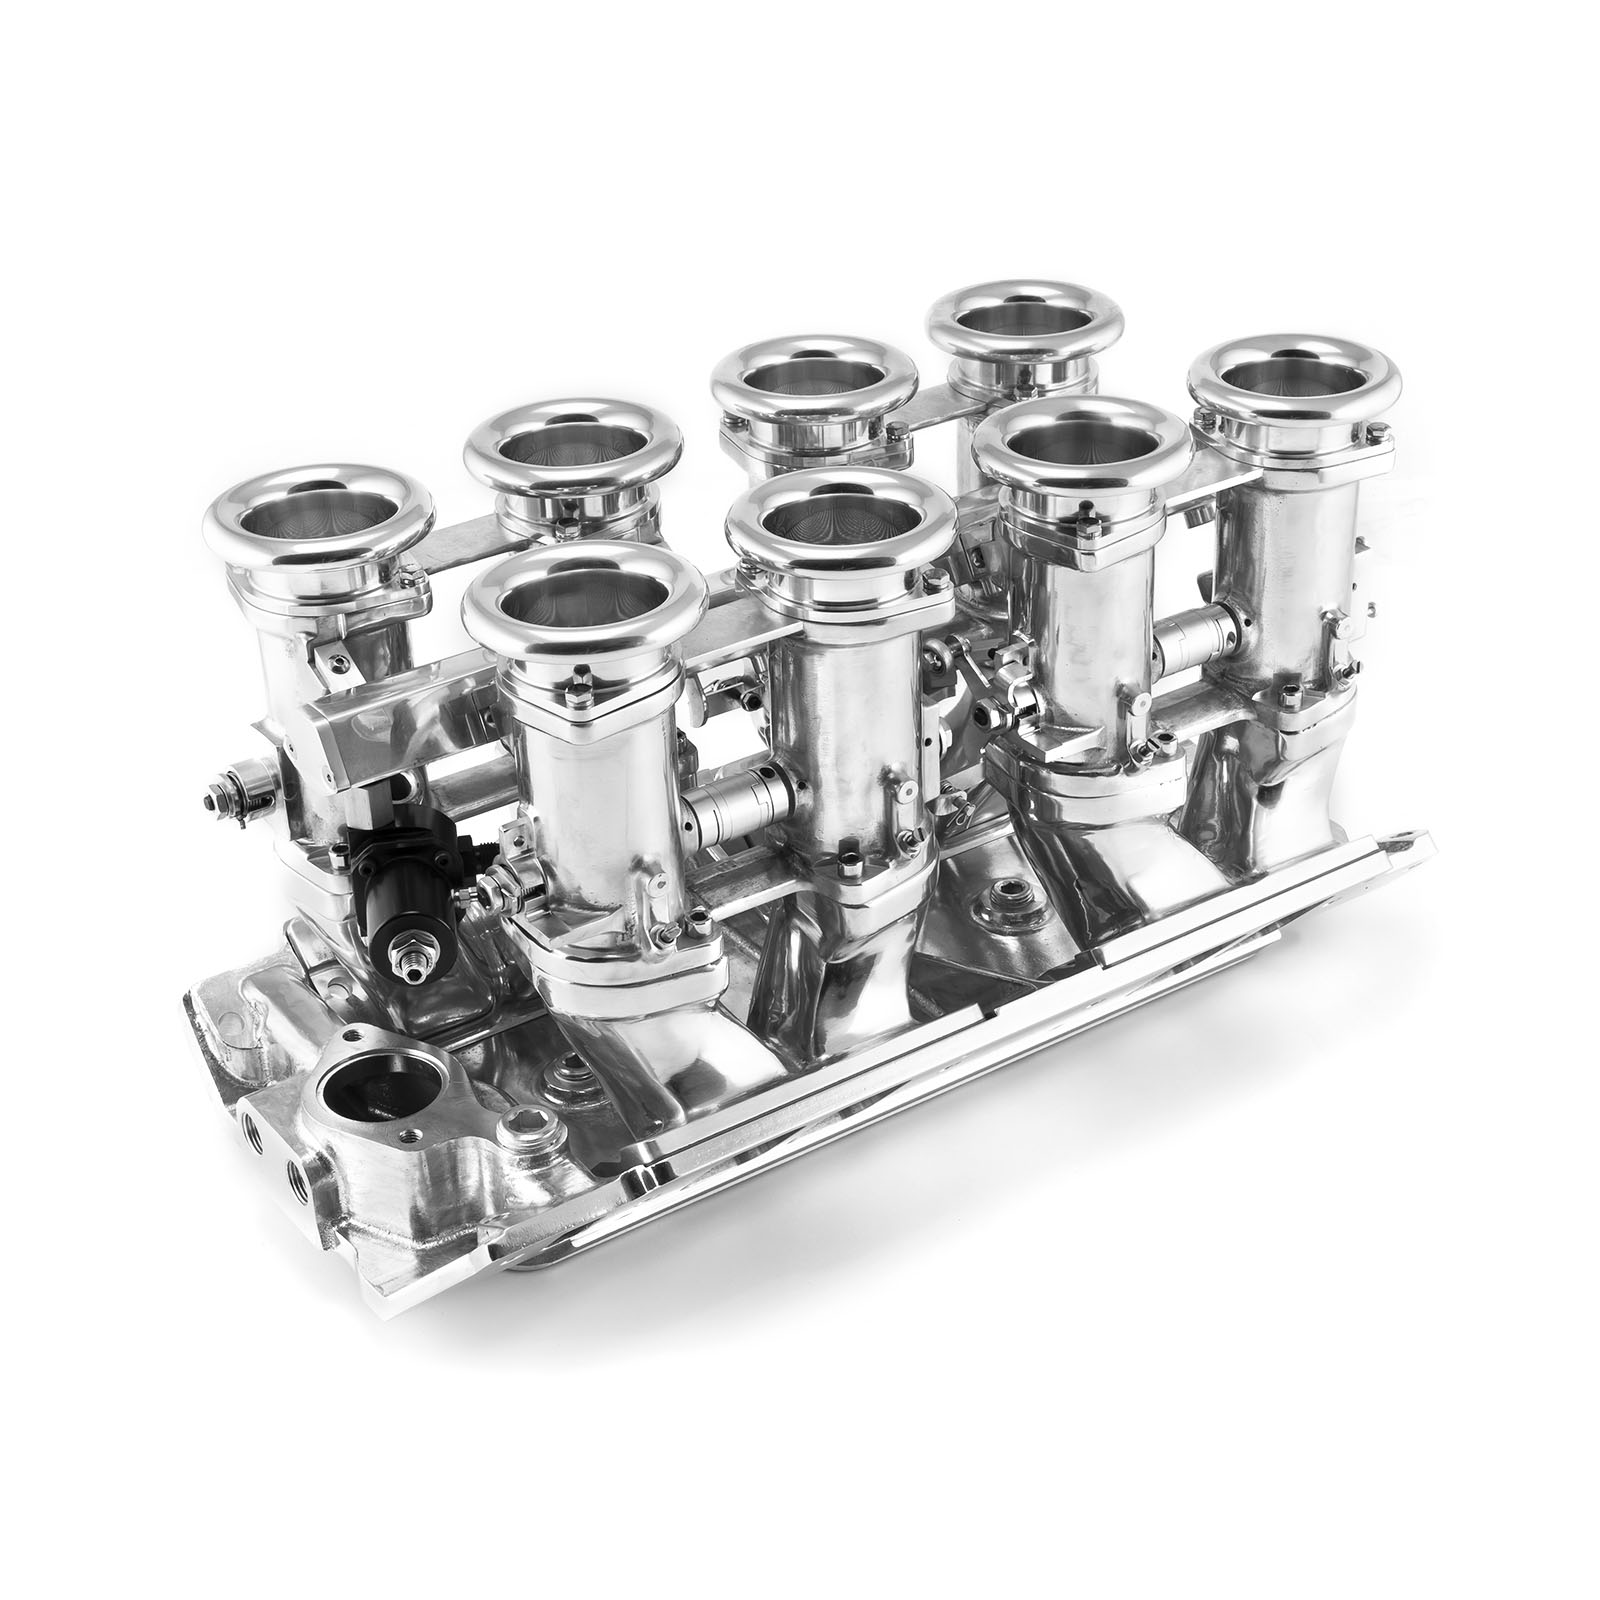 Chevy BBC 454 Downdraft 8 Stack EFI Intake Manifold System Complete Polished